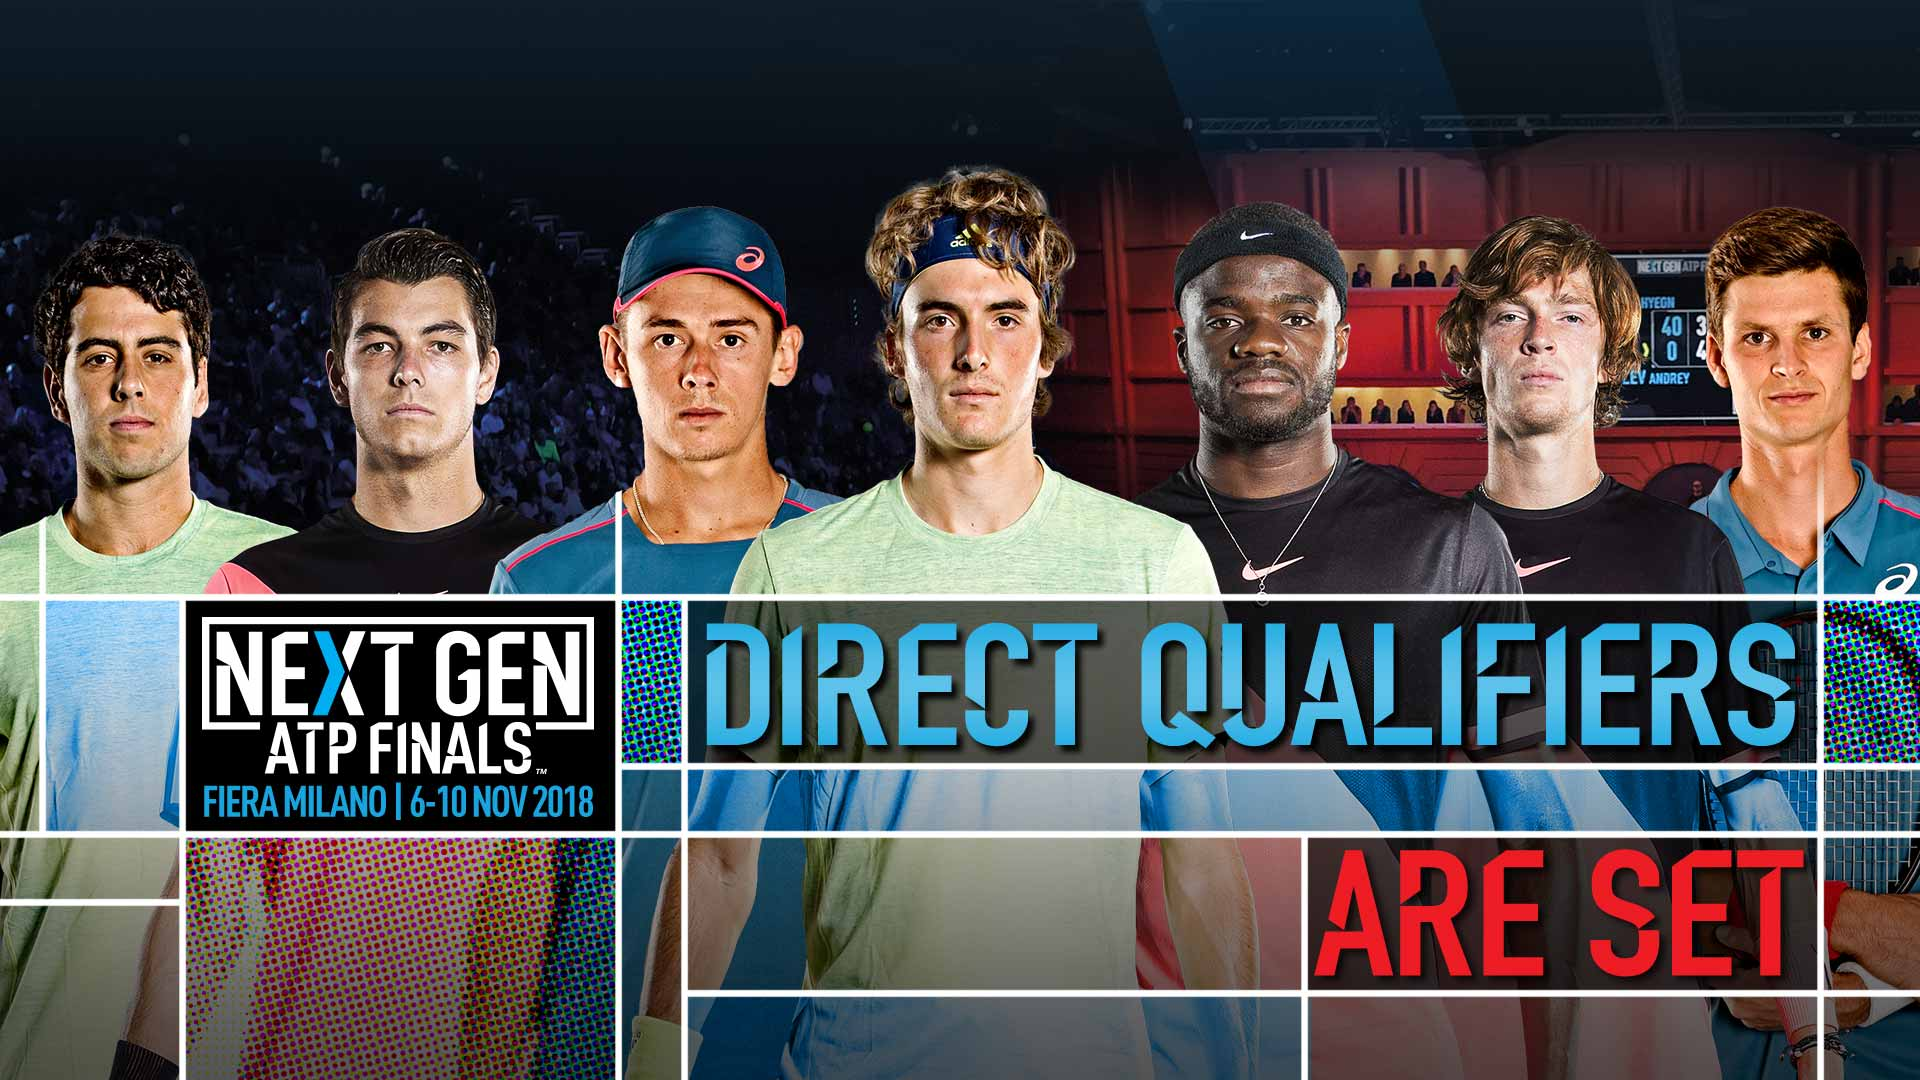 Next Gen ATP Finals Qualifiers